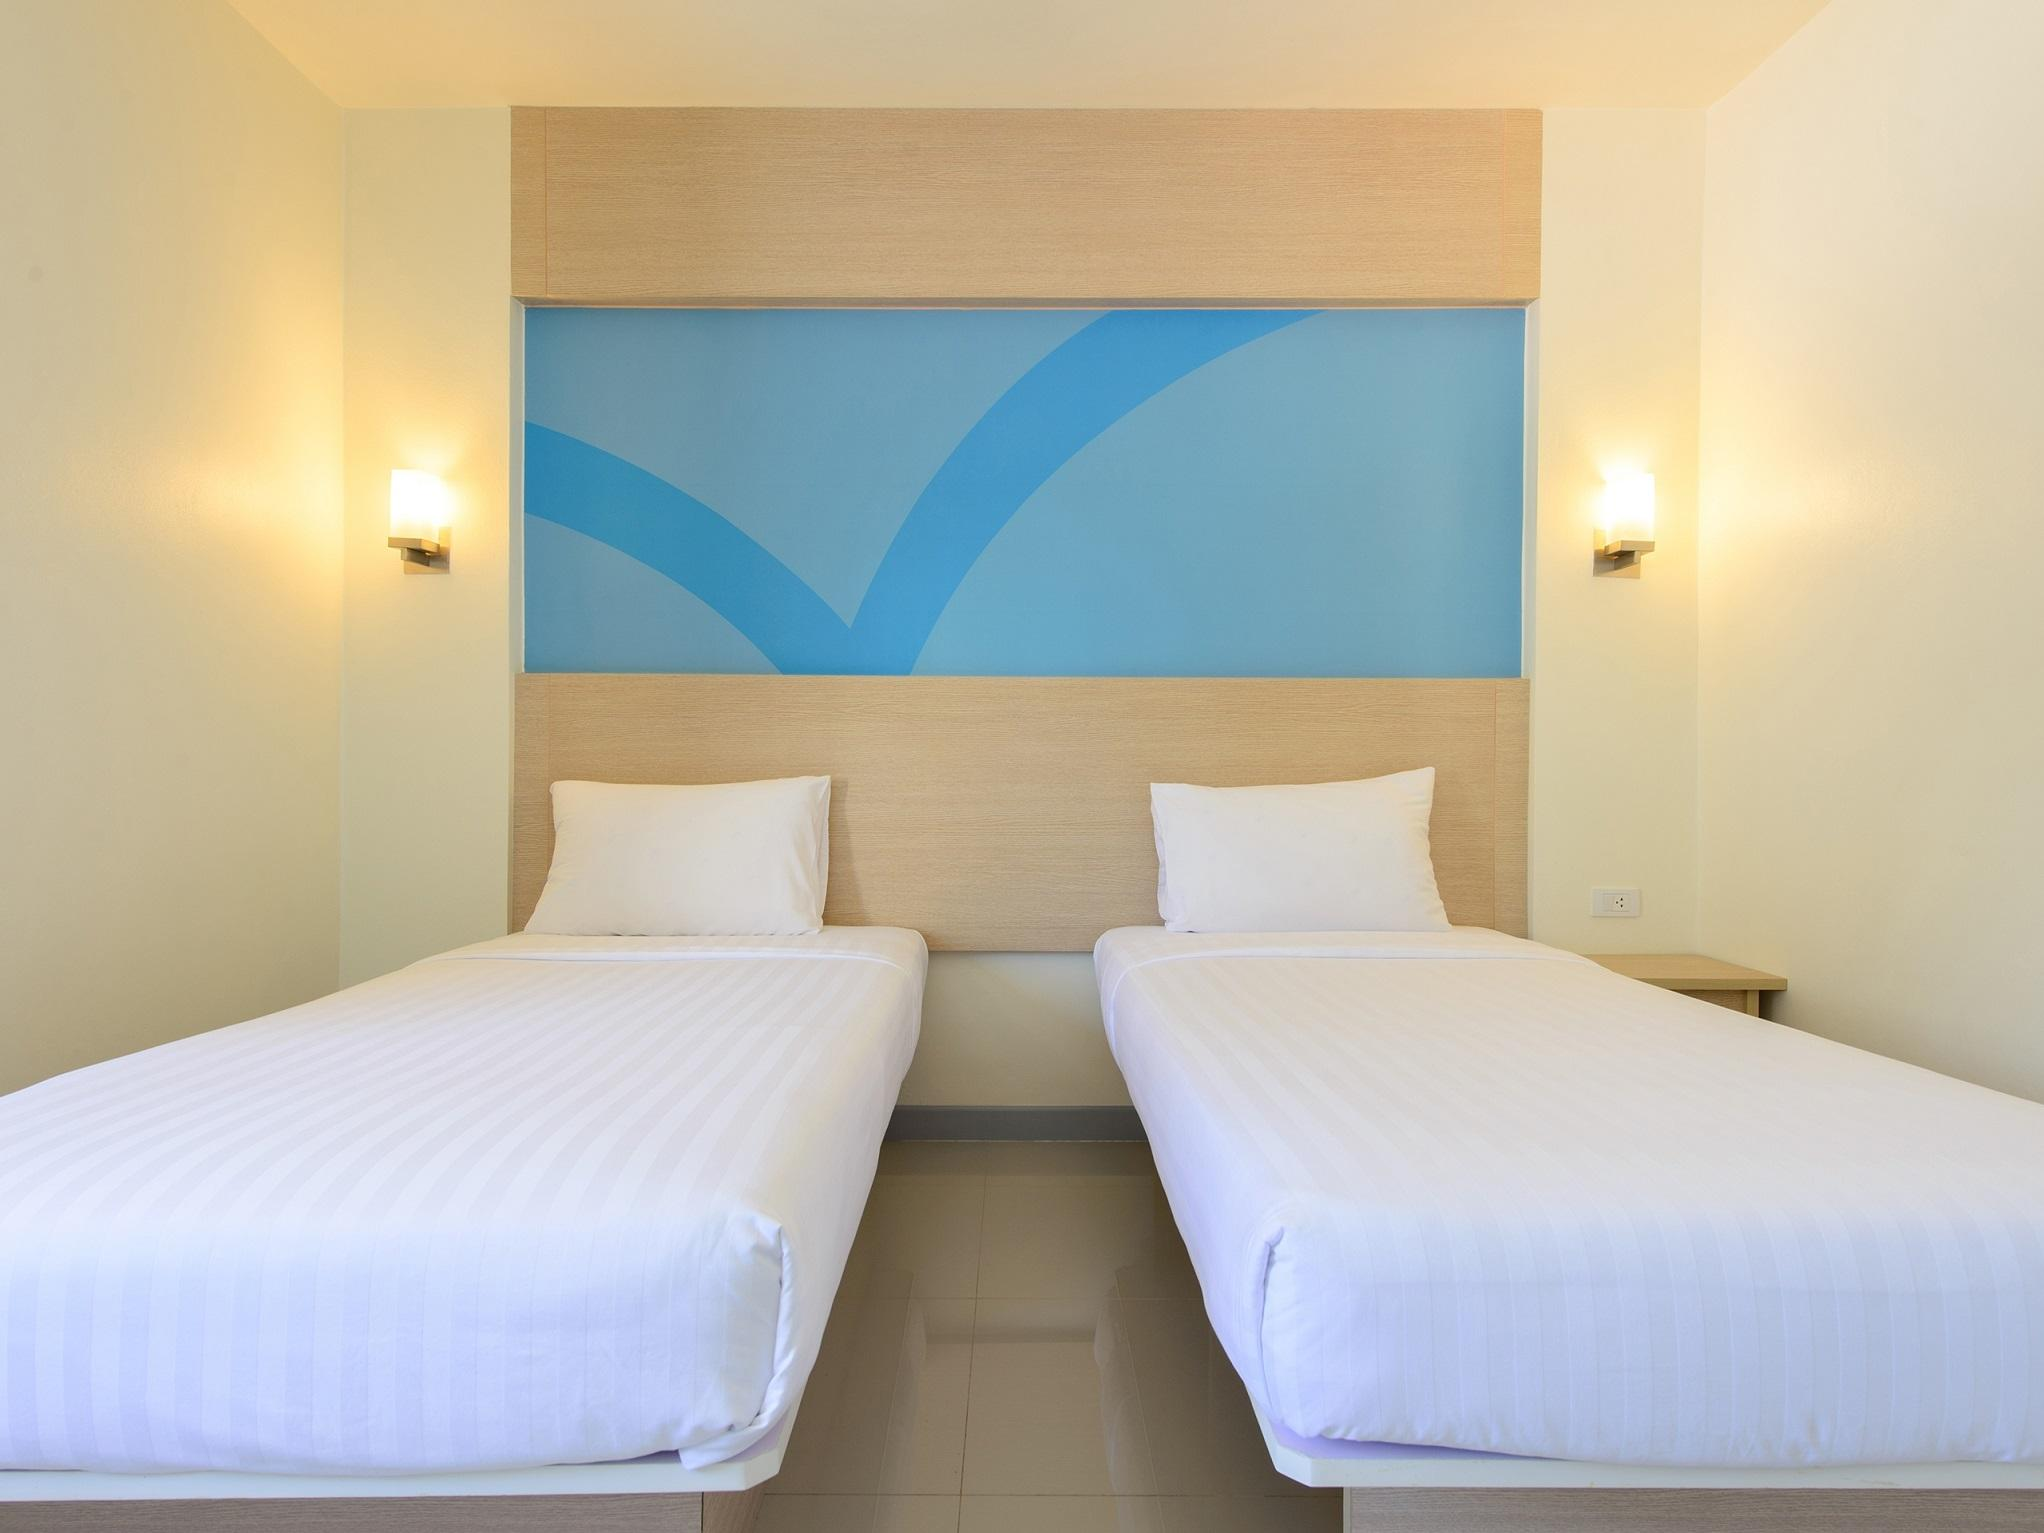 3. TwinRoom at Hop Inn Hotel